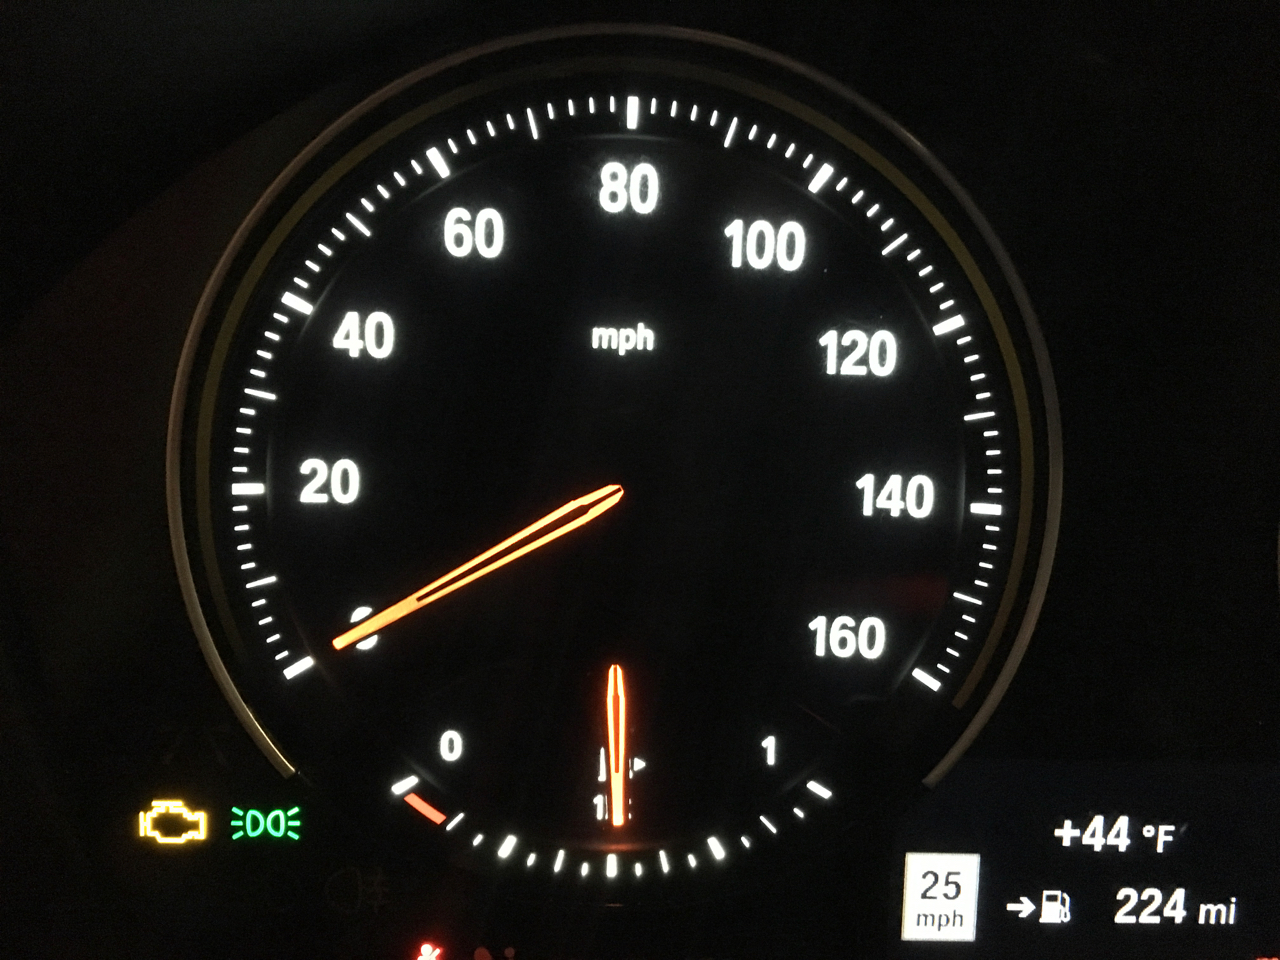 2018 Instrument Cluster Mph To Kmh